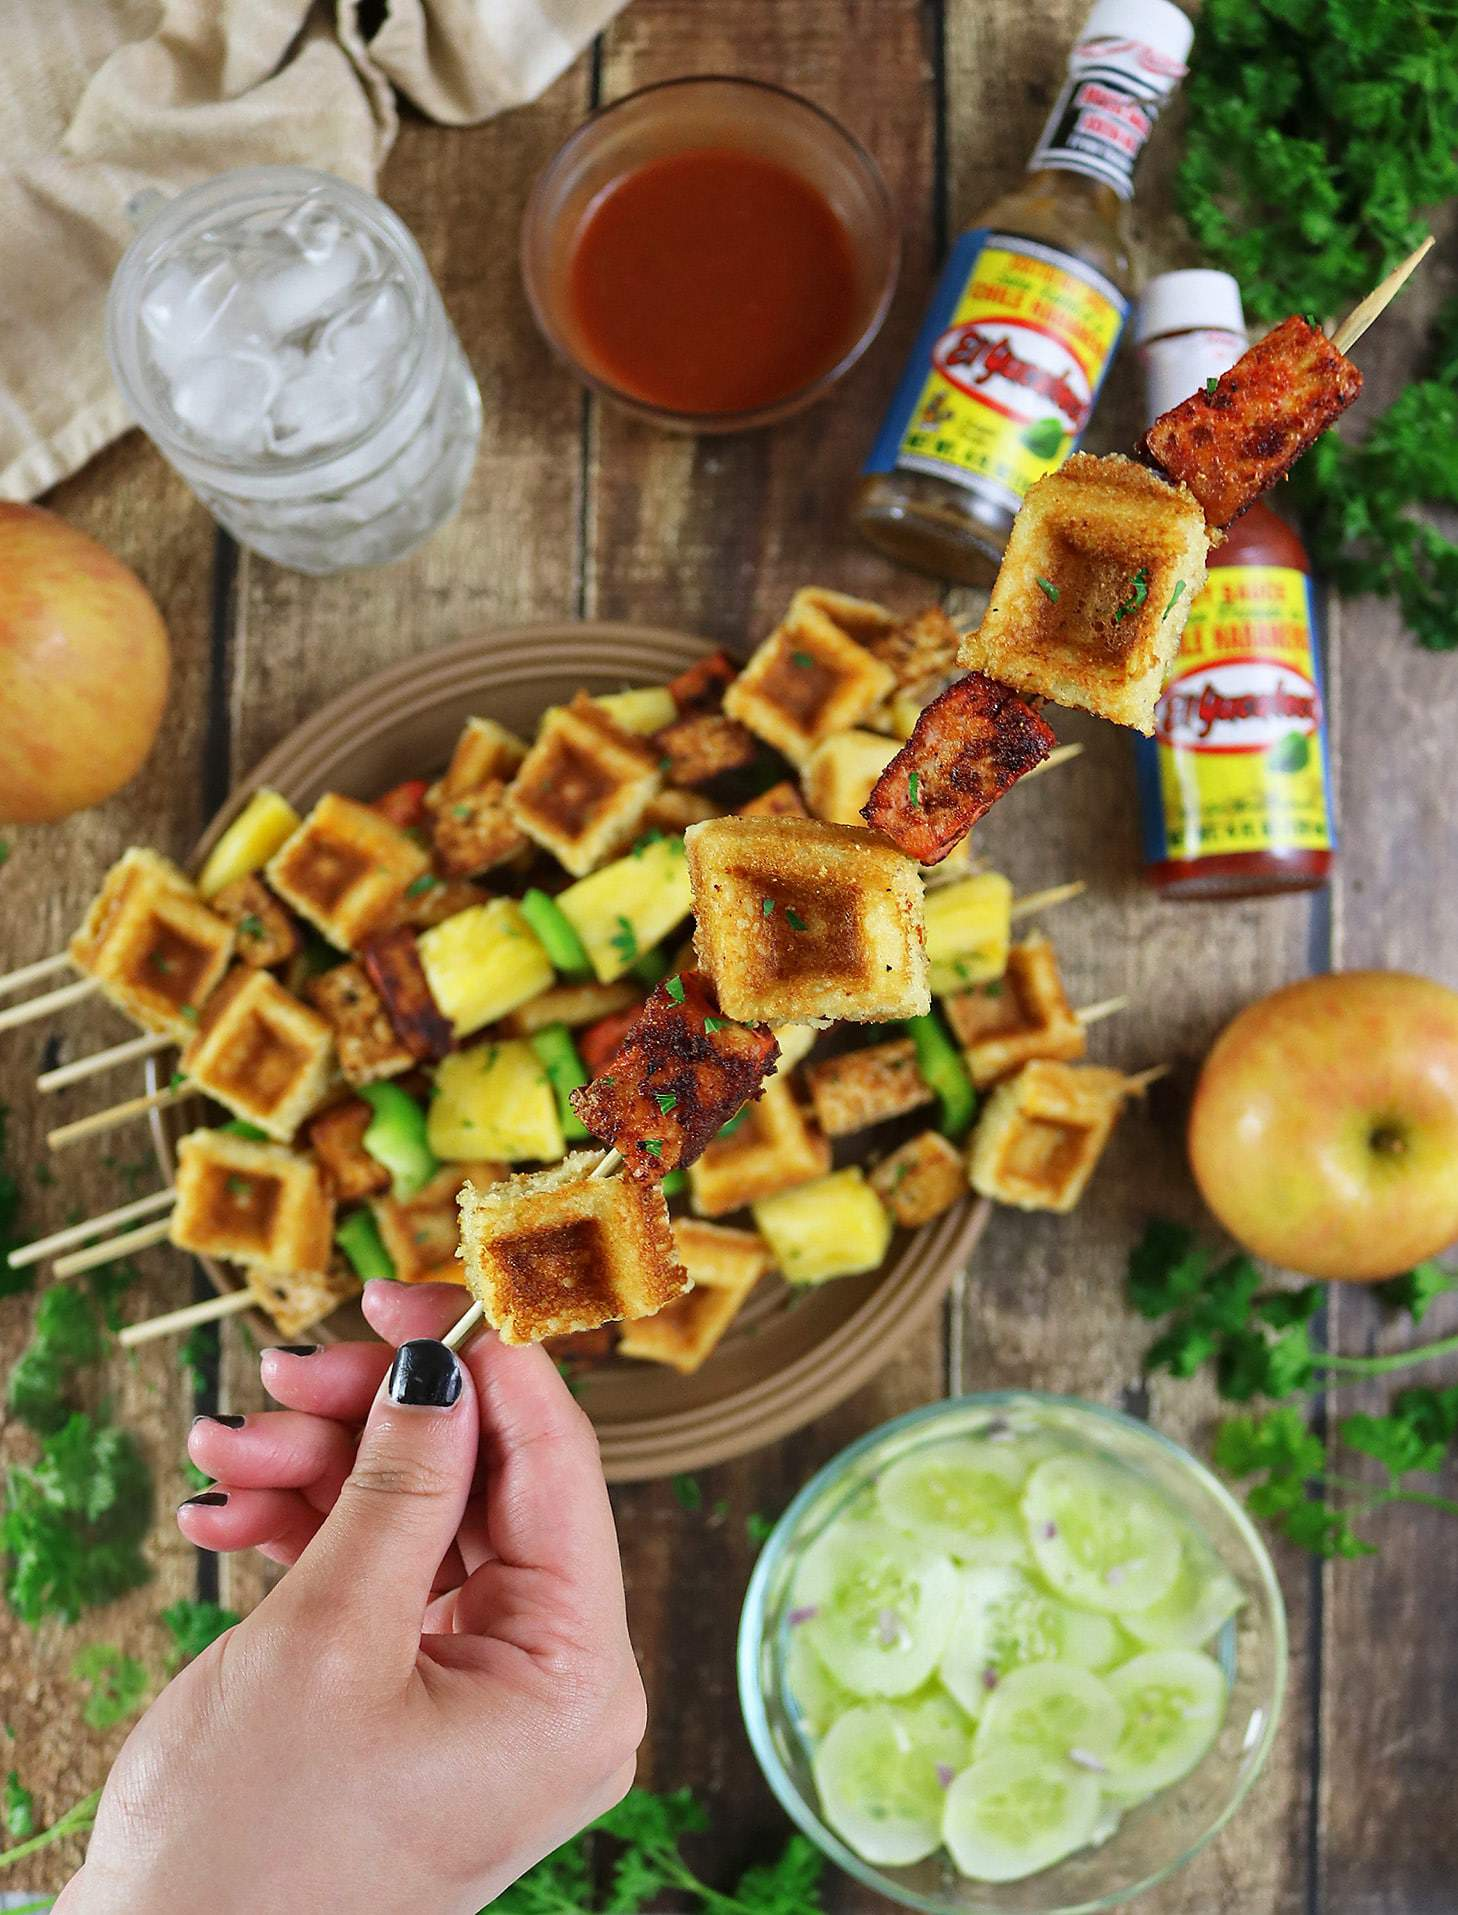 Waffles And Pan Fried Tofu Skewer